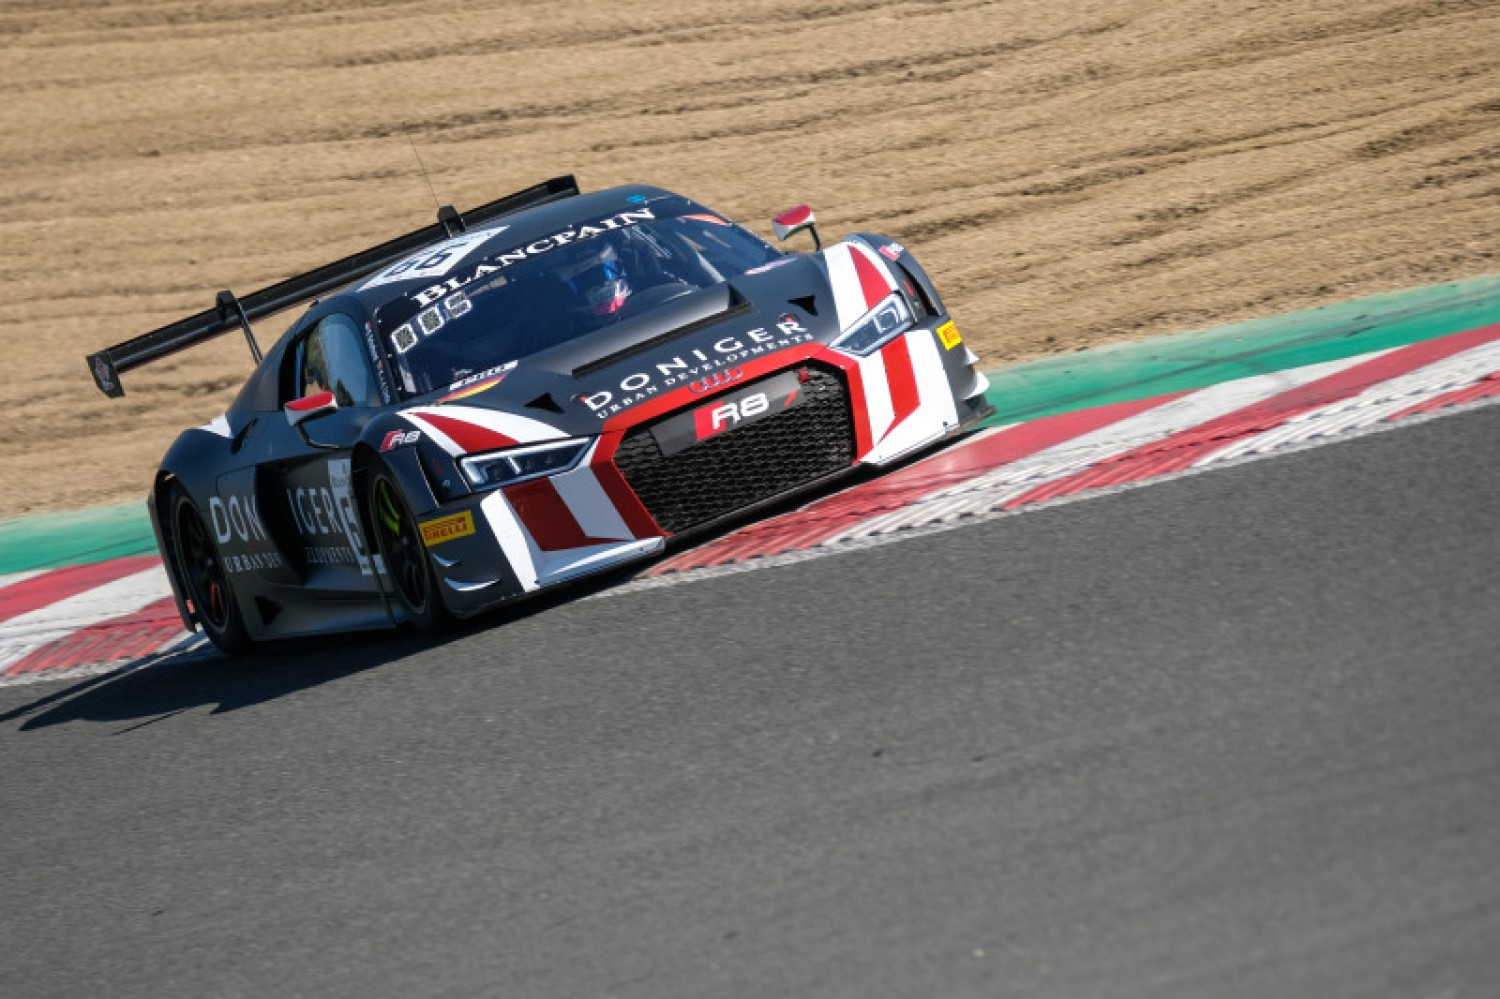 Van der Linde sends Attempto-Audi to the top in second Brands Hatch practice